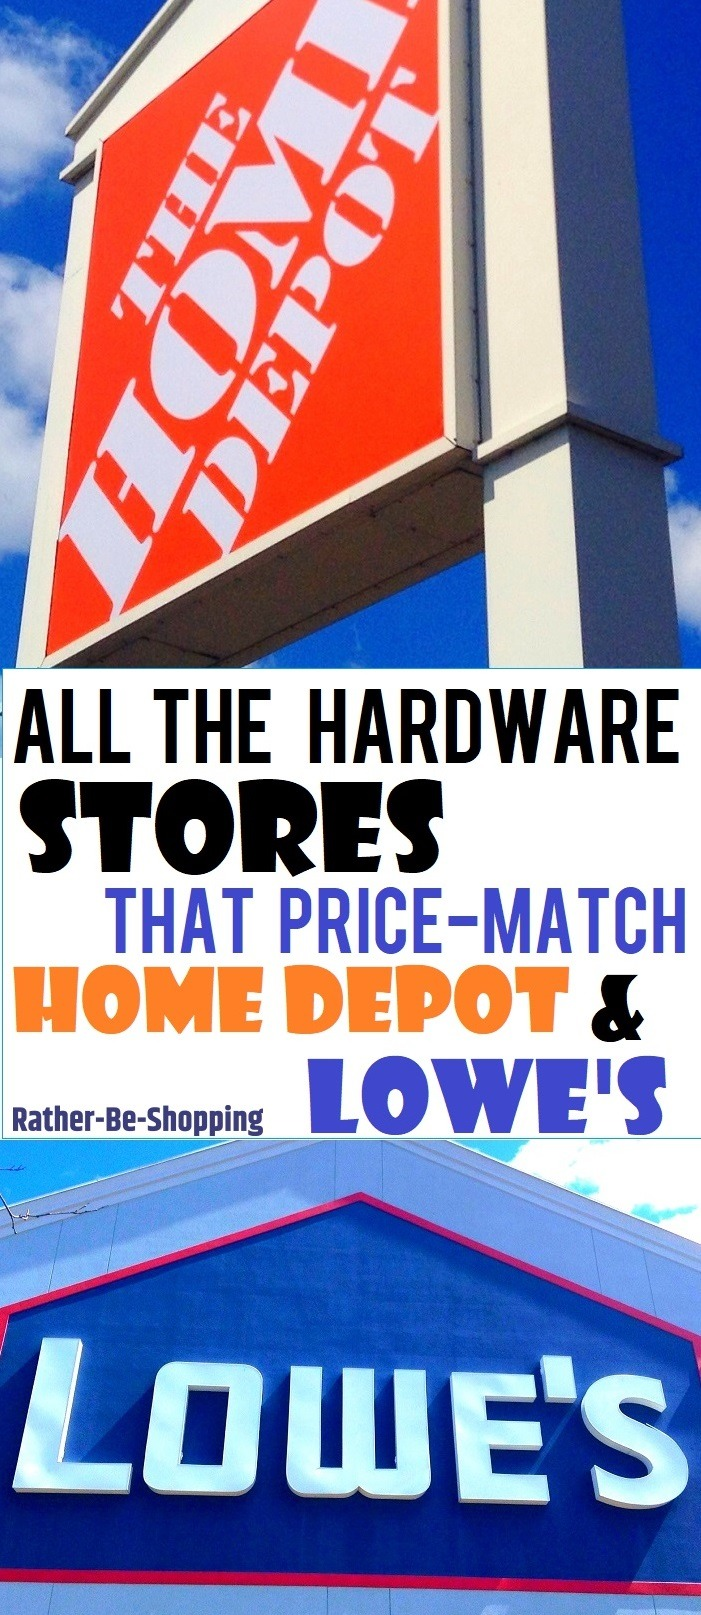 All The Hardware Stores That Price-Match Home Depot and Lowe's